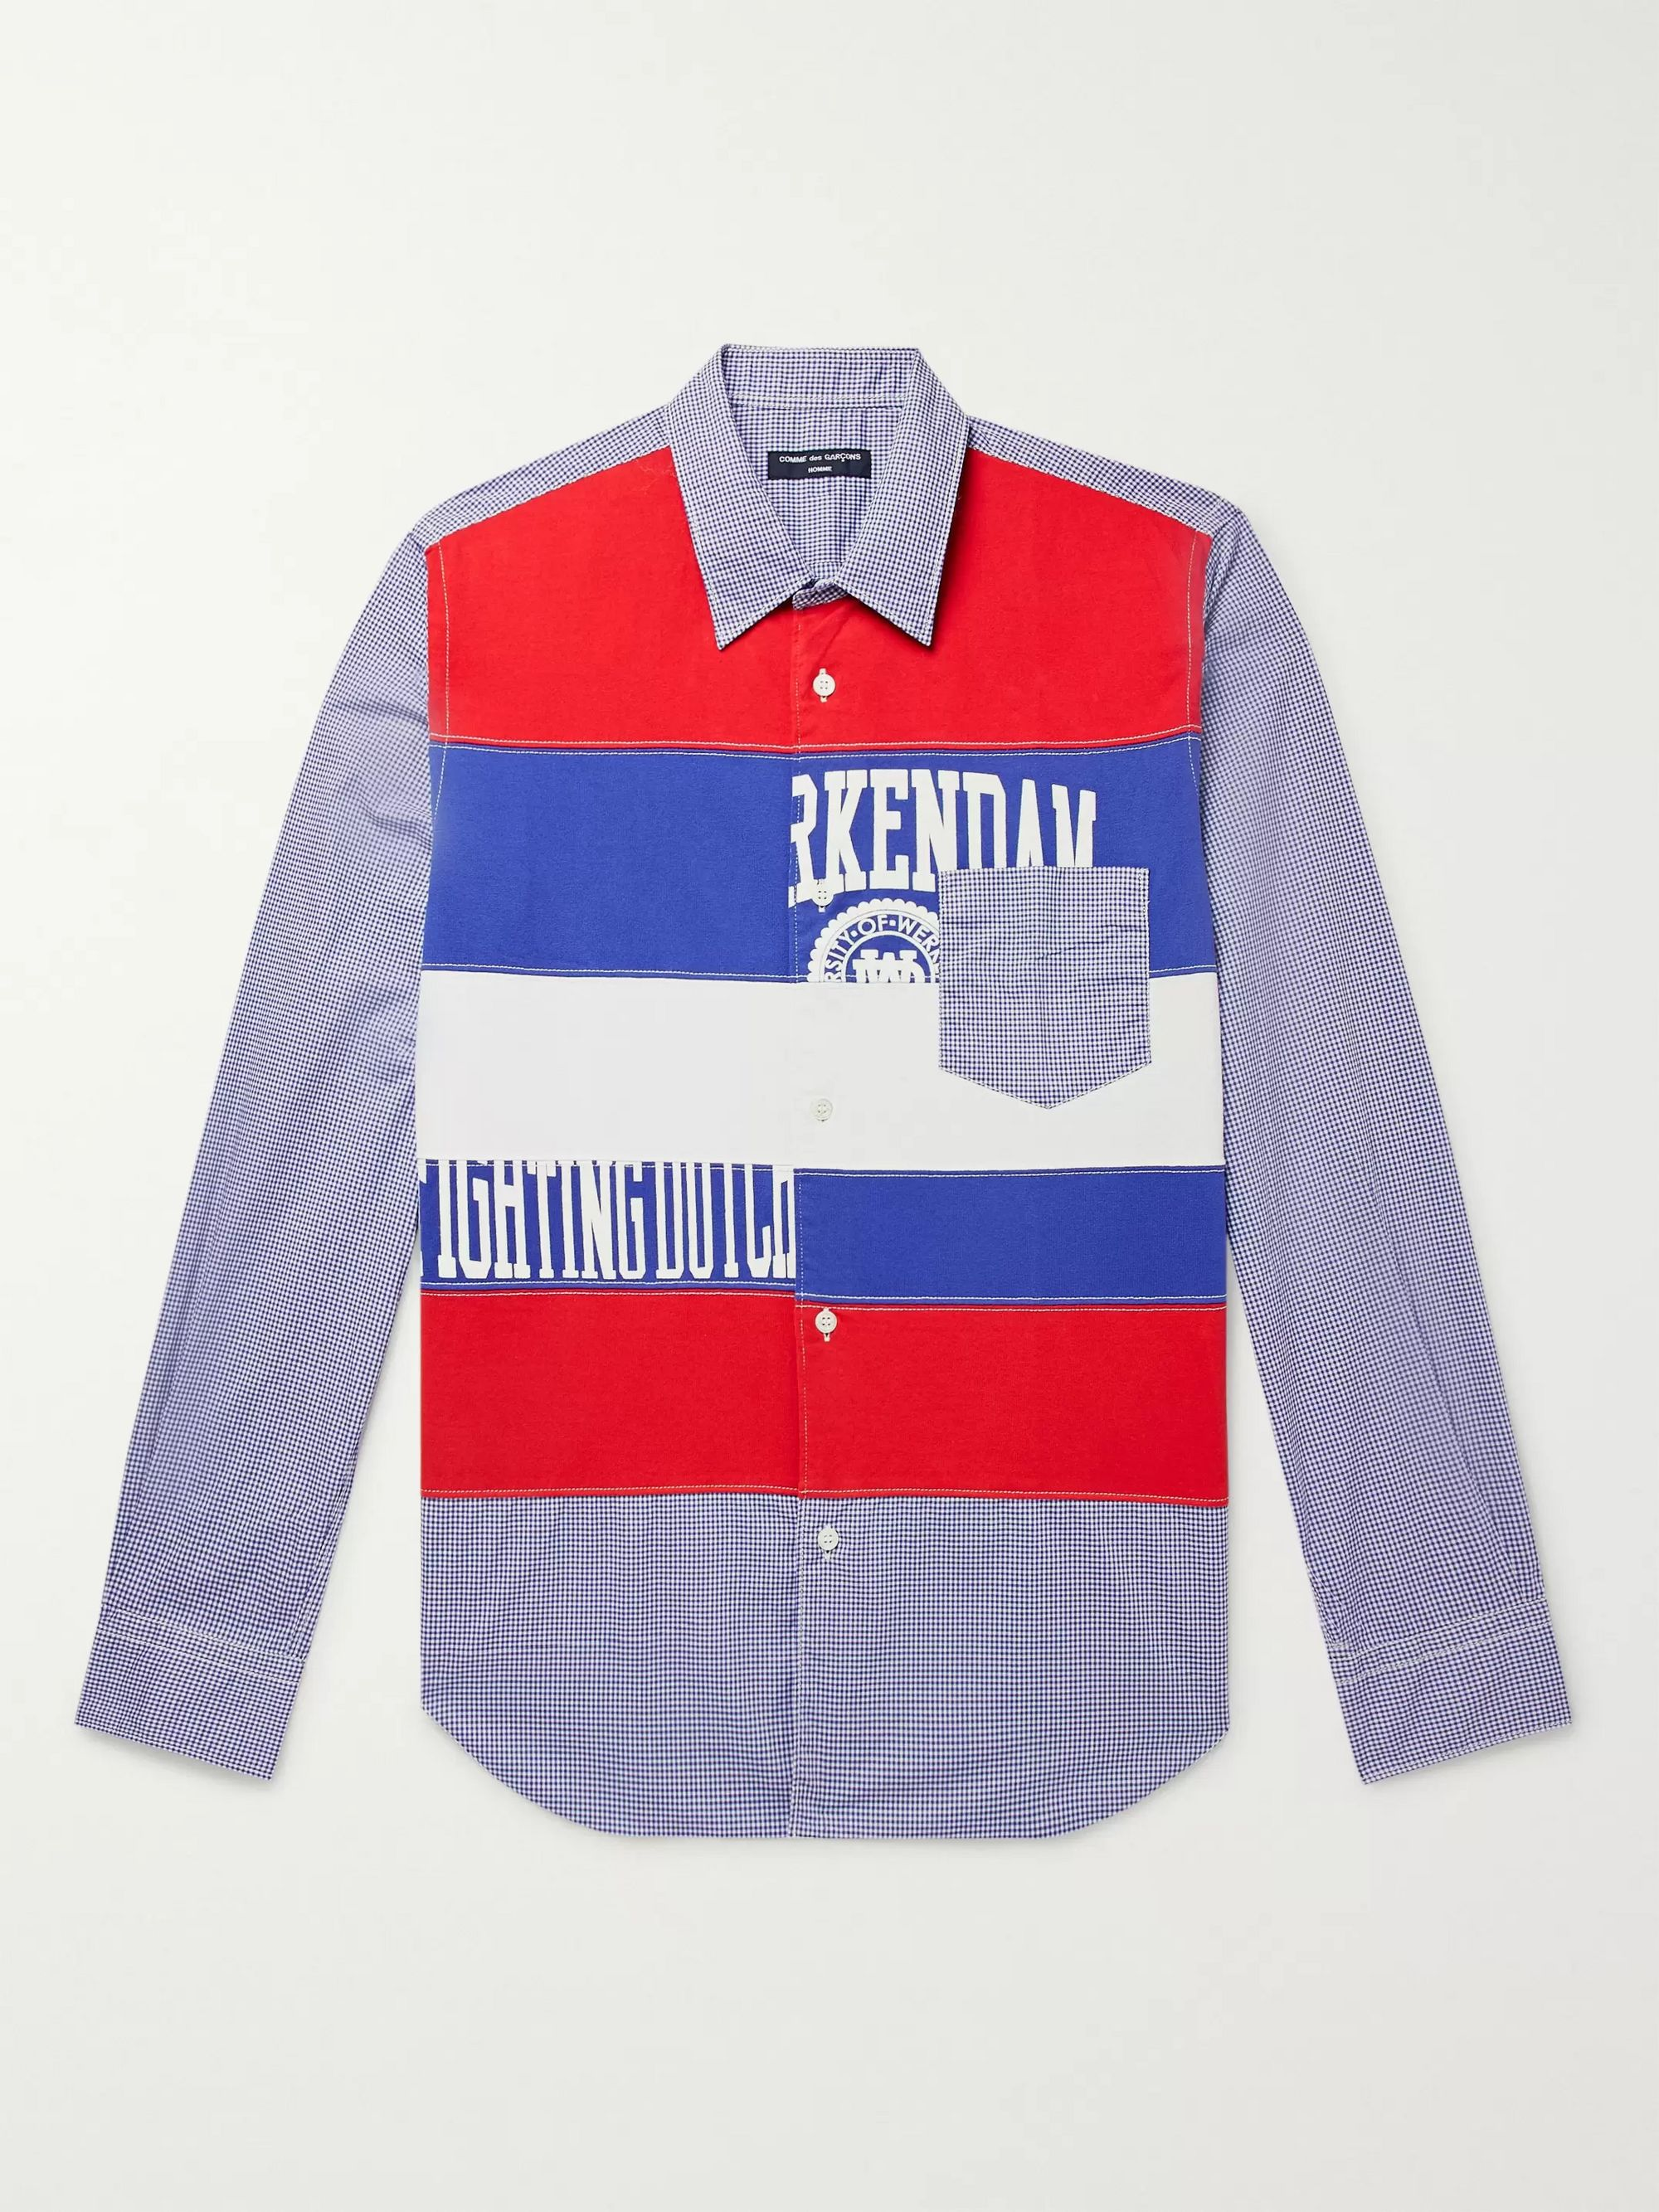 Comme des Garçons HOMME Slim-Fit Panelled Printed Cotton-Jersey and Checked Cotton-Poplin Shirt